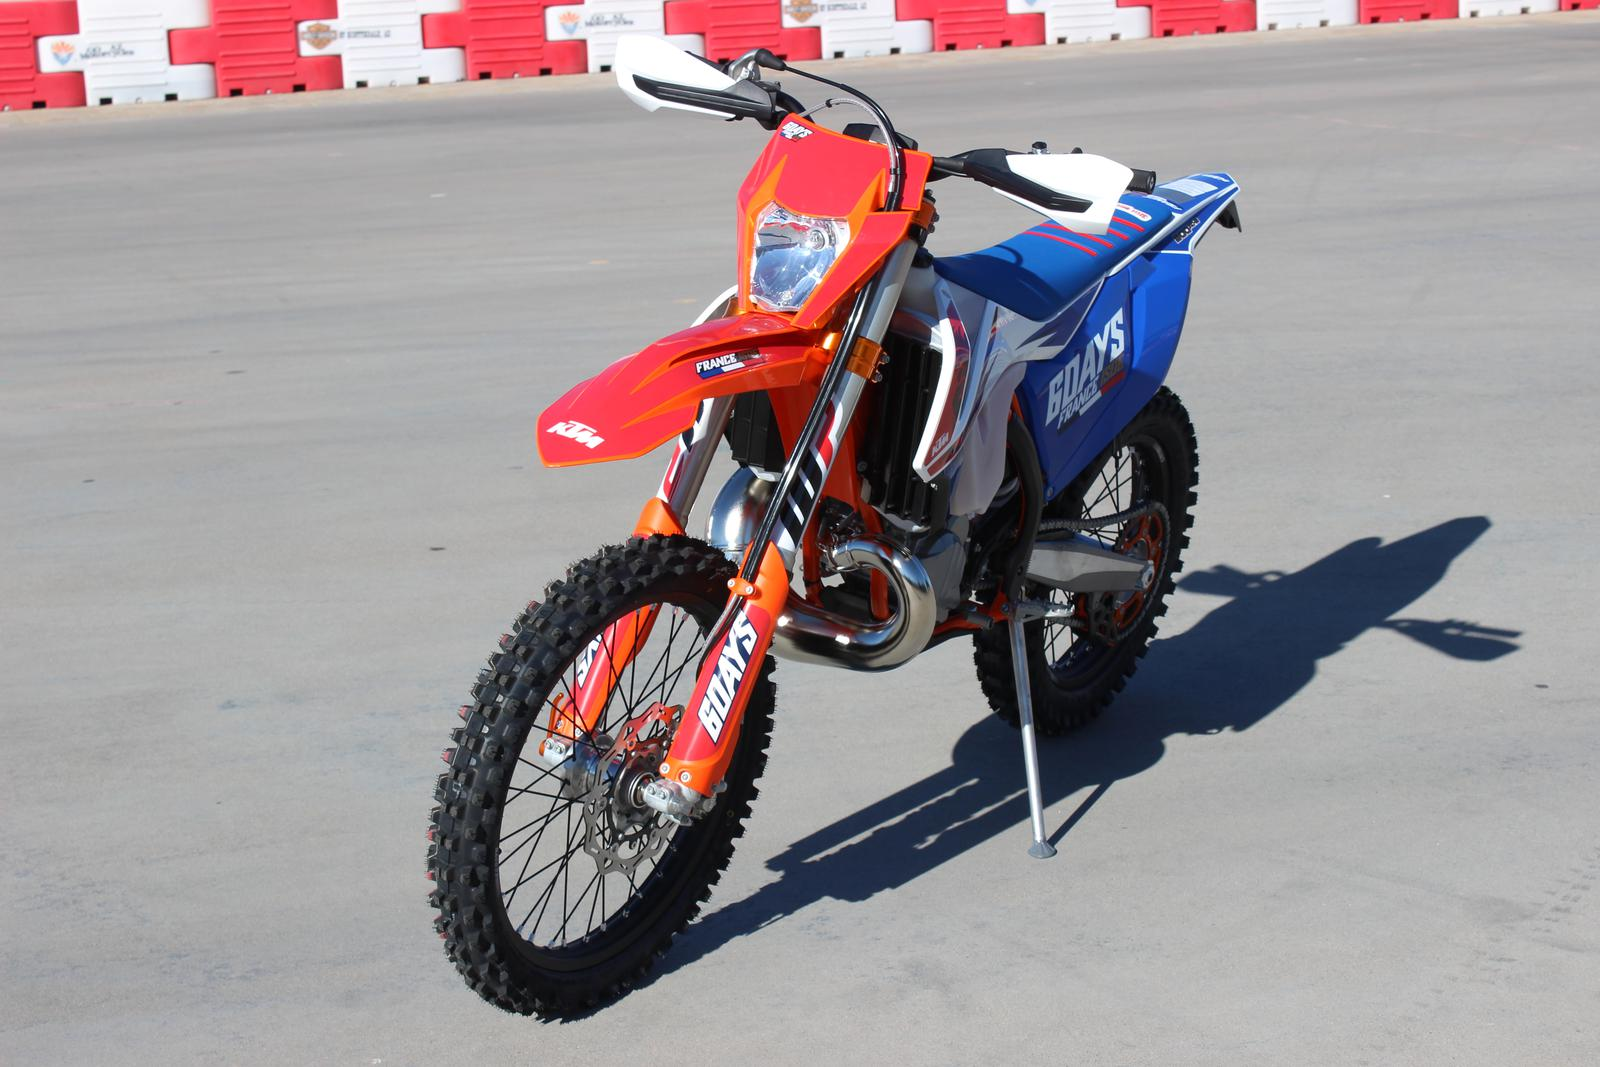 2018 KTM 300 XC W Six Days (6) 2018 ktm 300 xc w six days for sale in scottsdale, az go az  at virtualis.co